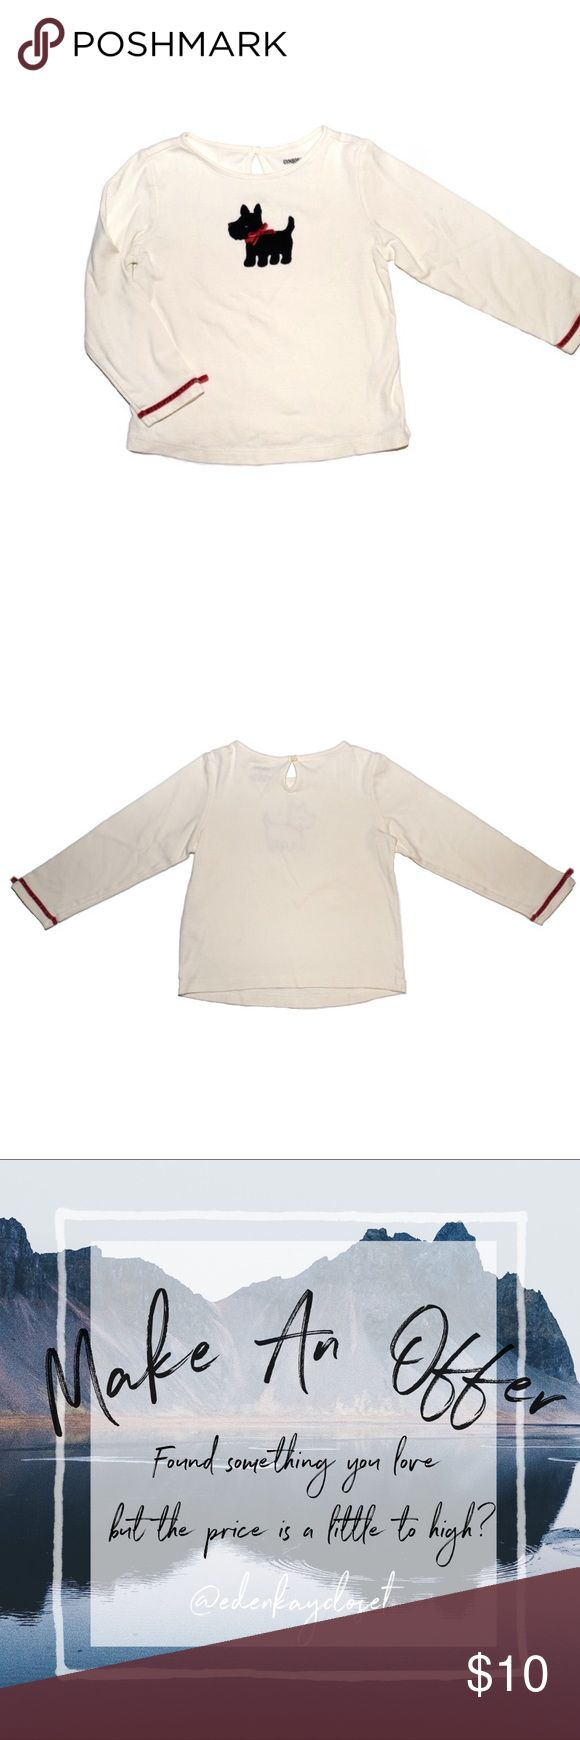 Girls Thermal Top With Thumb Hole